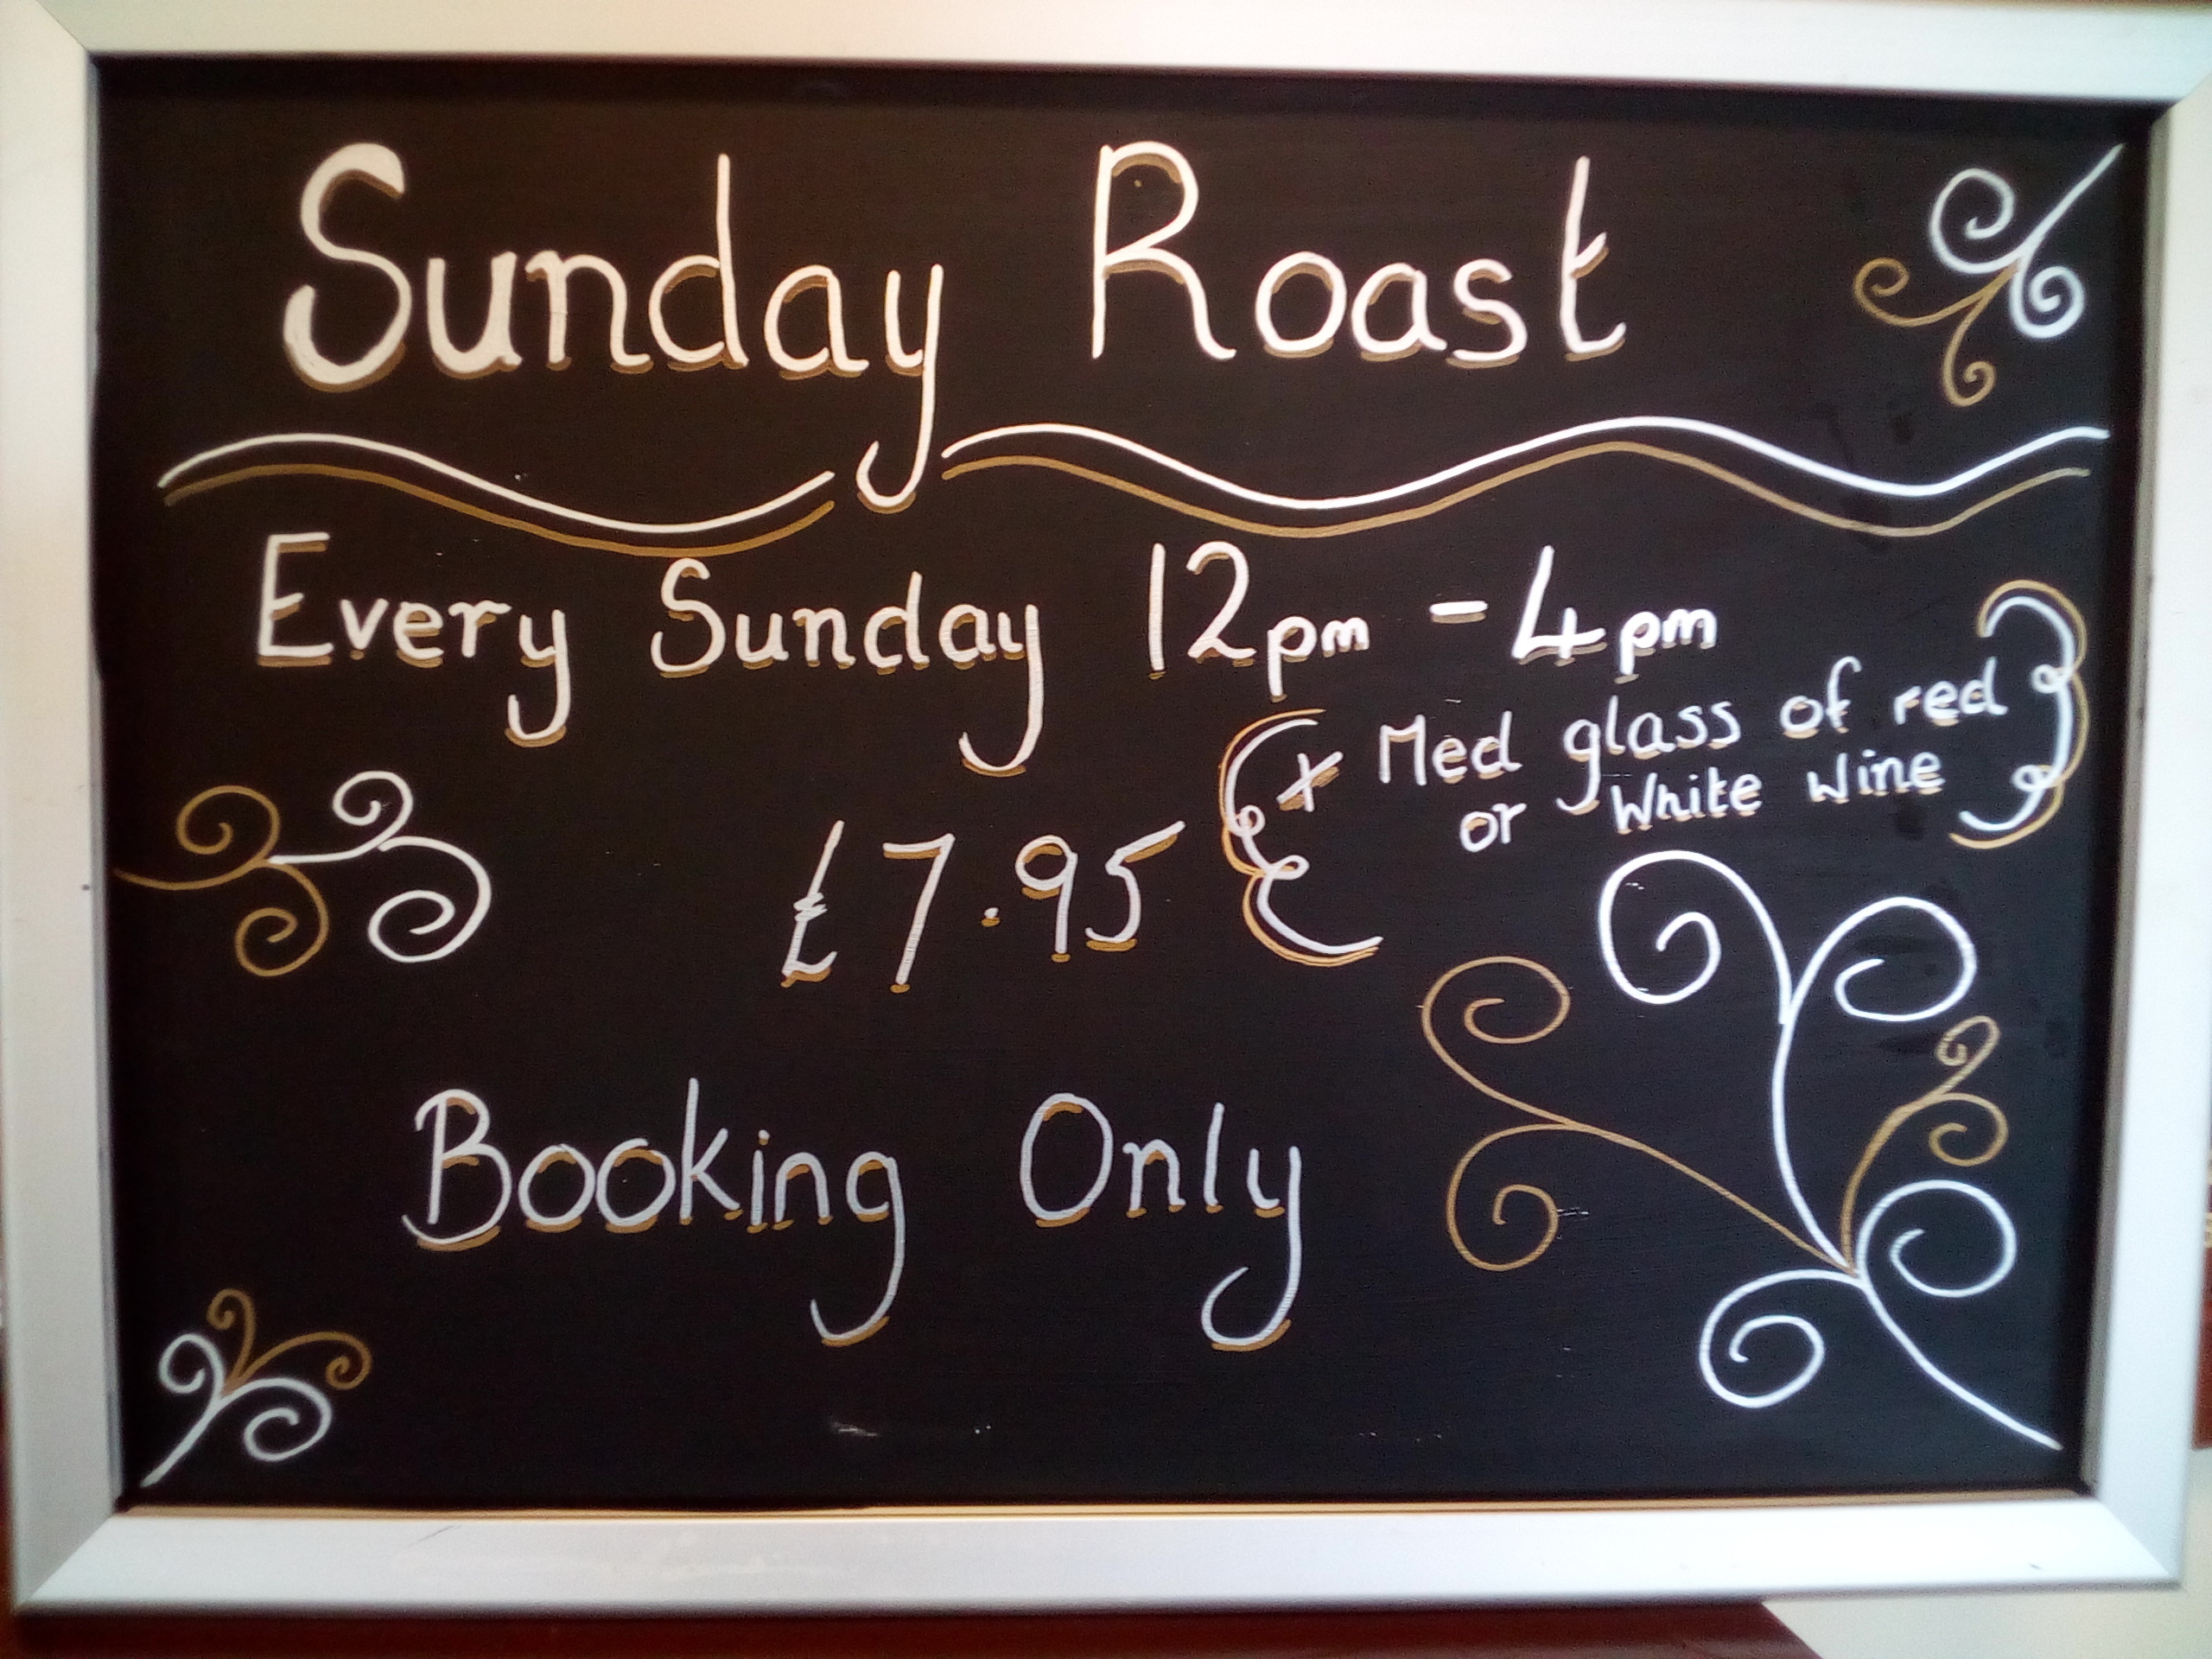 Sunday Lunches available from Sunday 27th October 2019